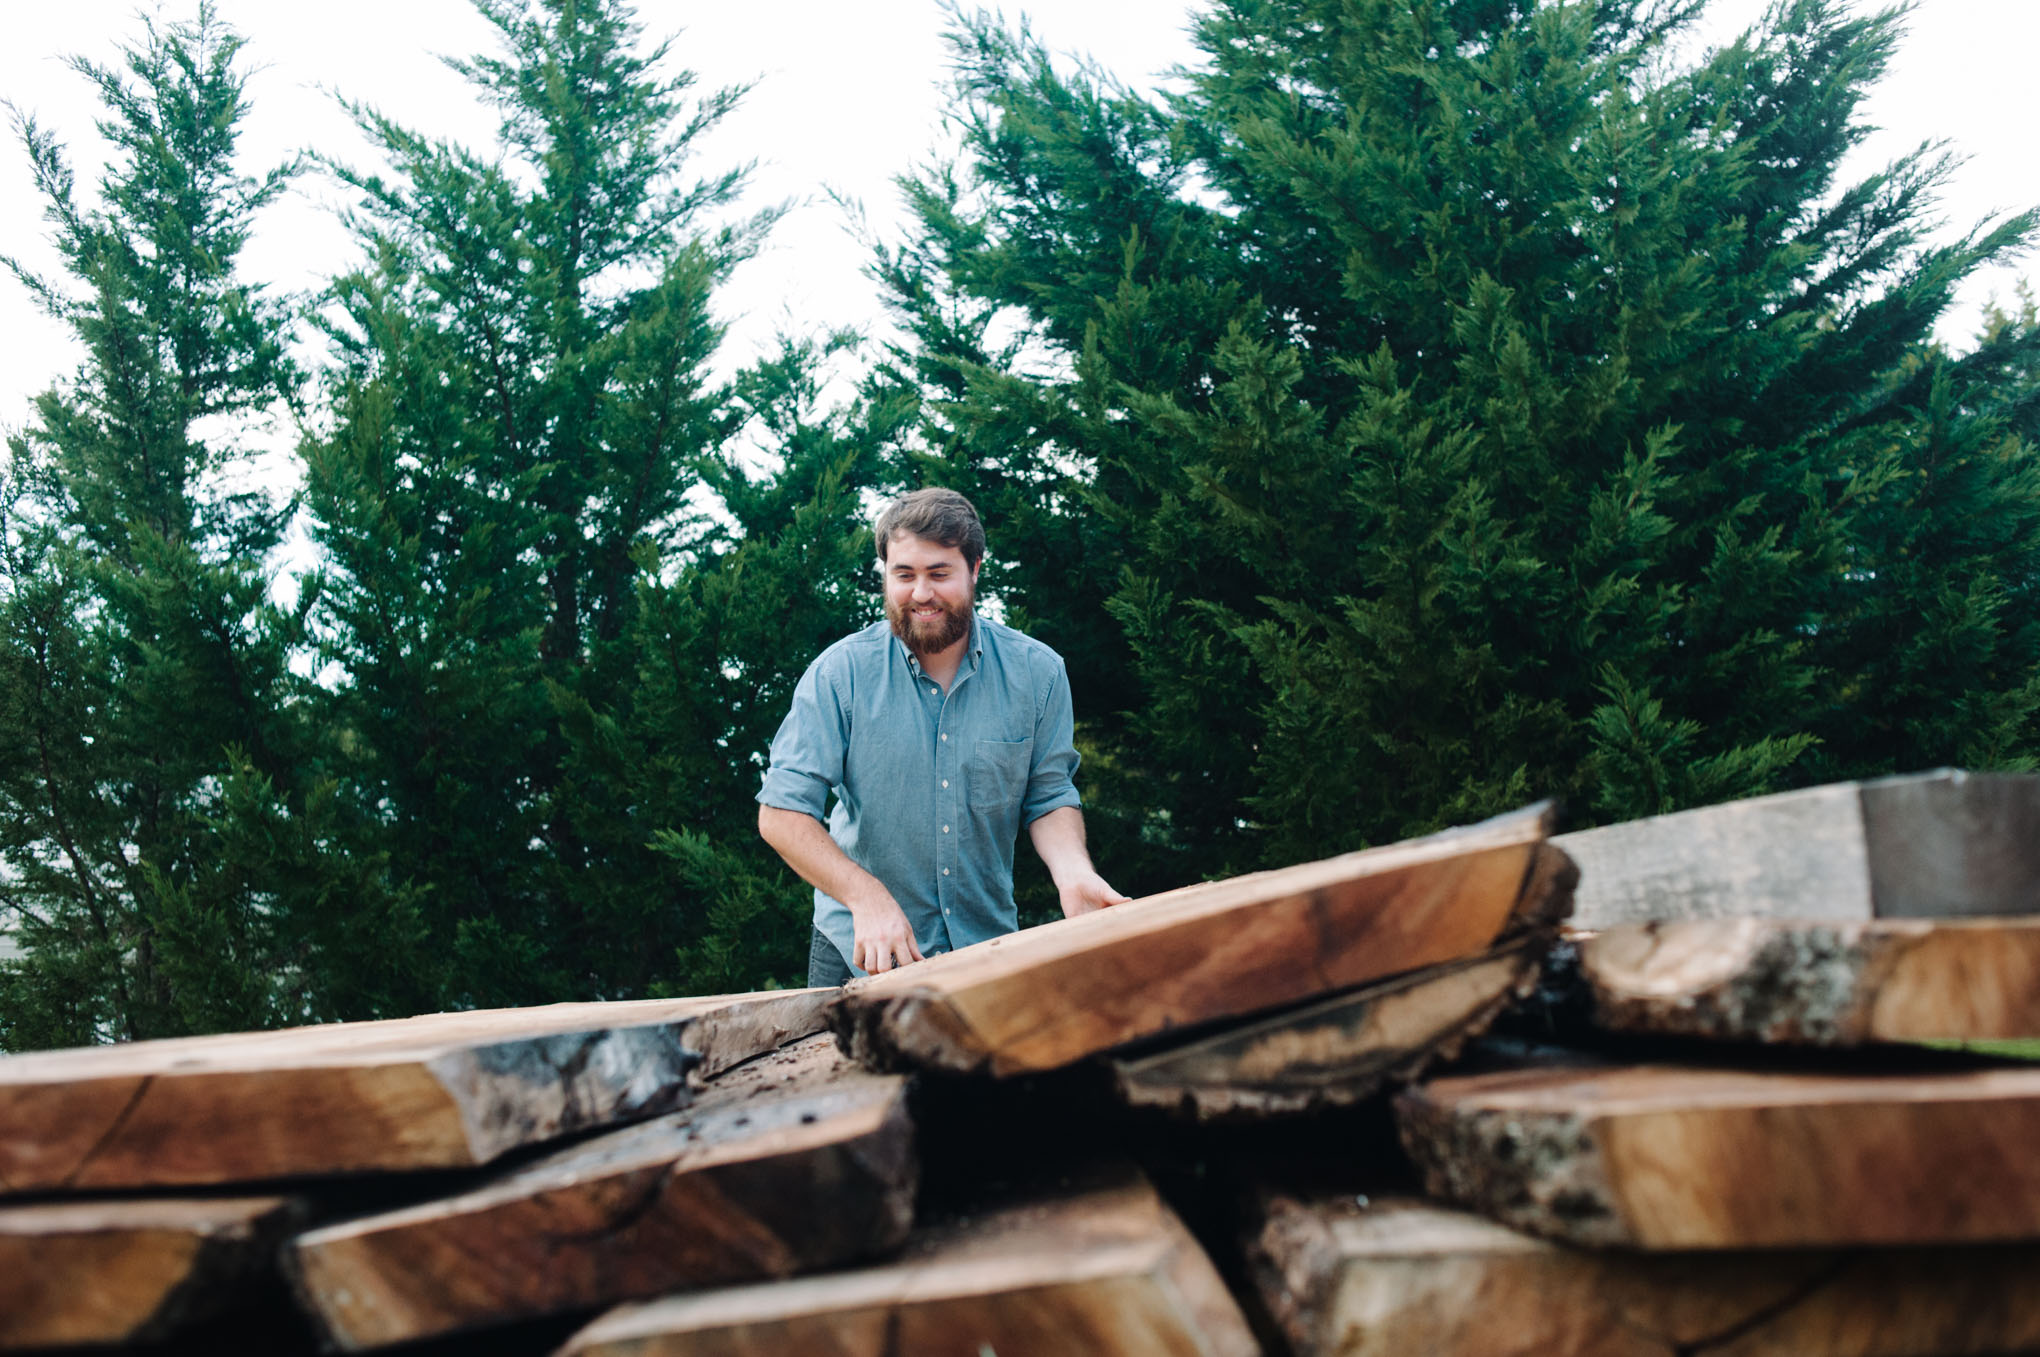 Maker Story: Aaron Gibbons Woodworking, King, NC